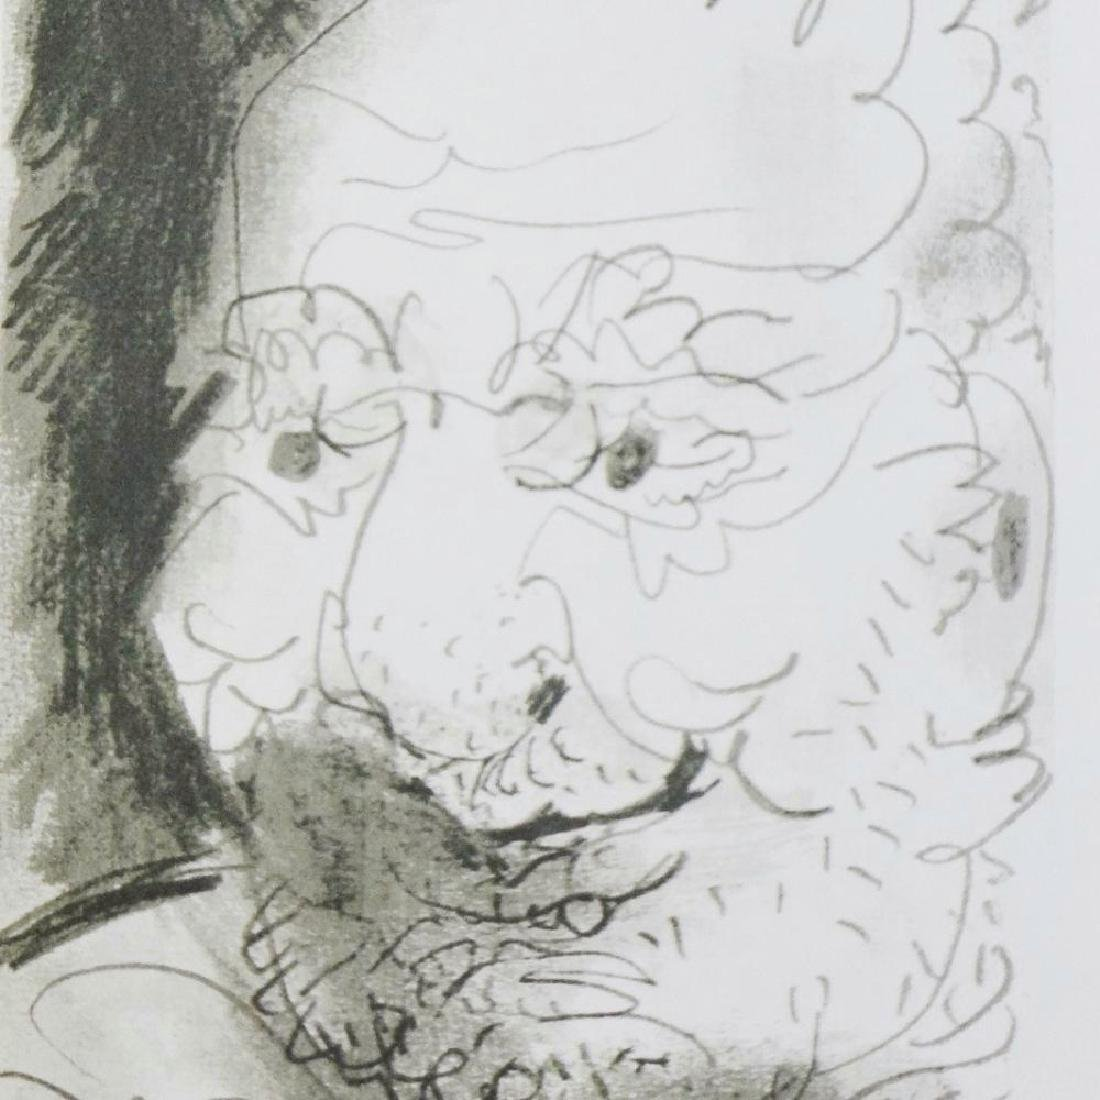 PICASSO PORTRAIT ABSTRACT LINE DRAWING 6.10.64 - 4